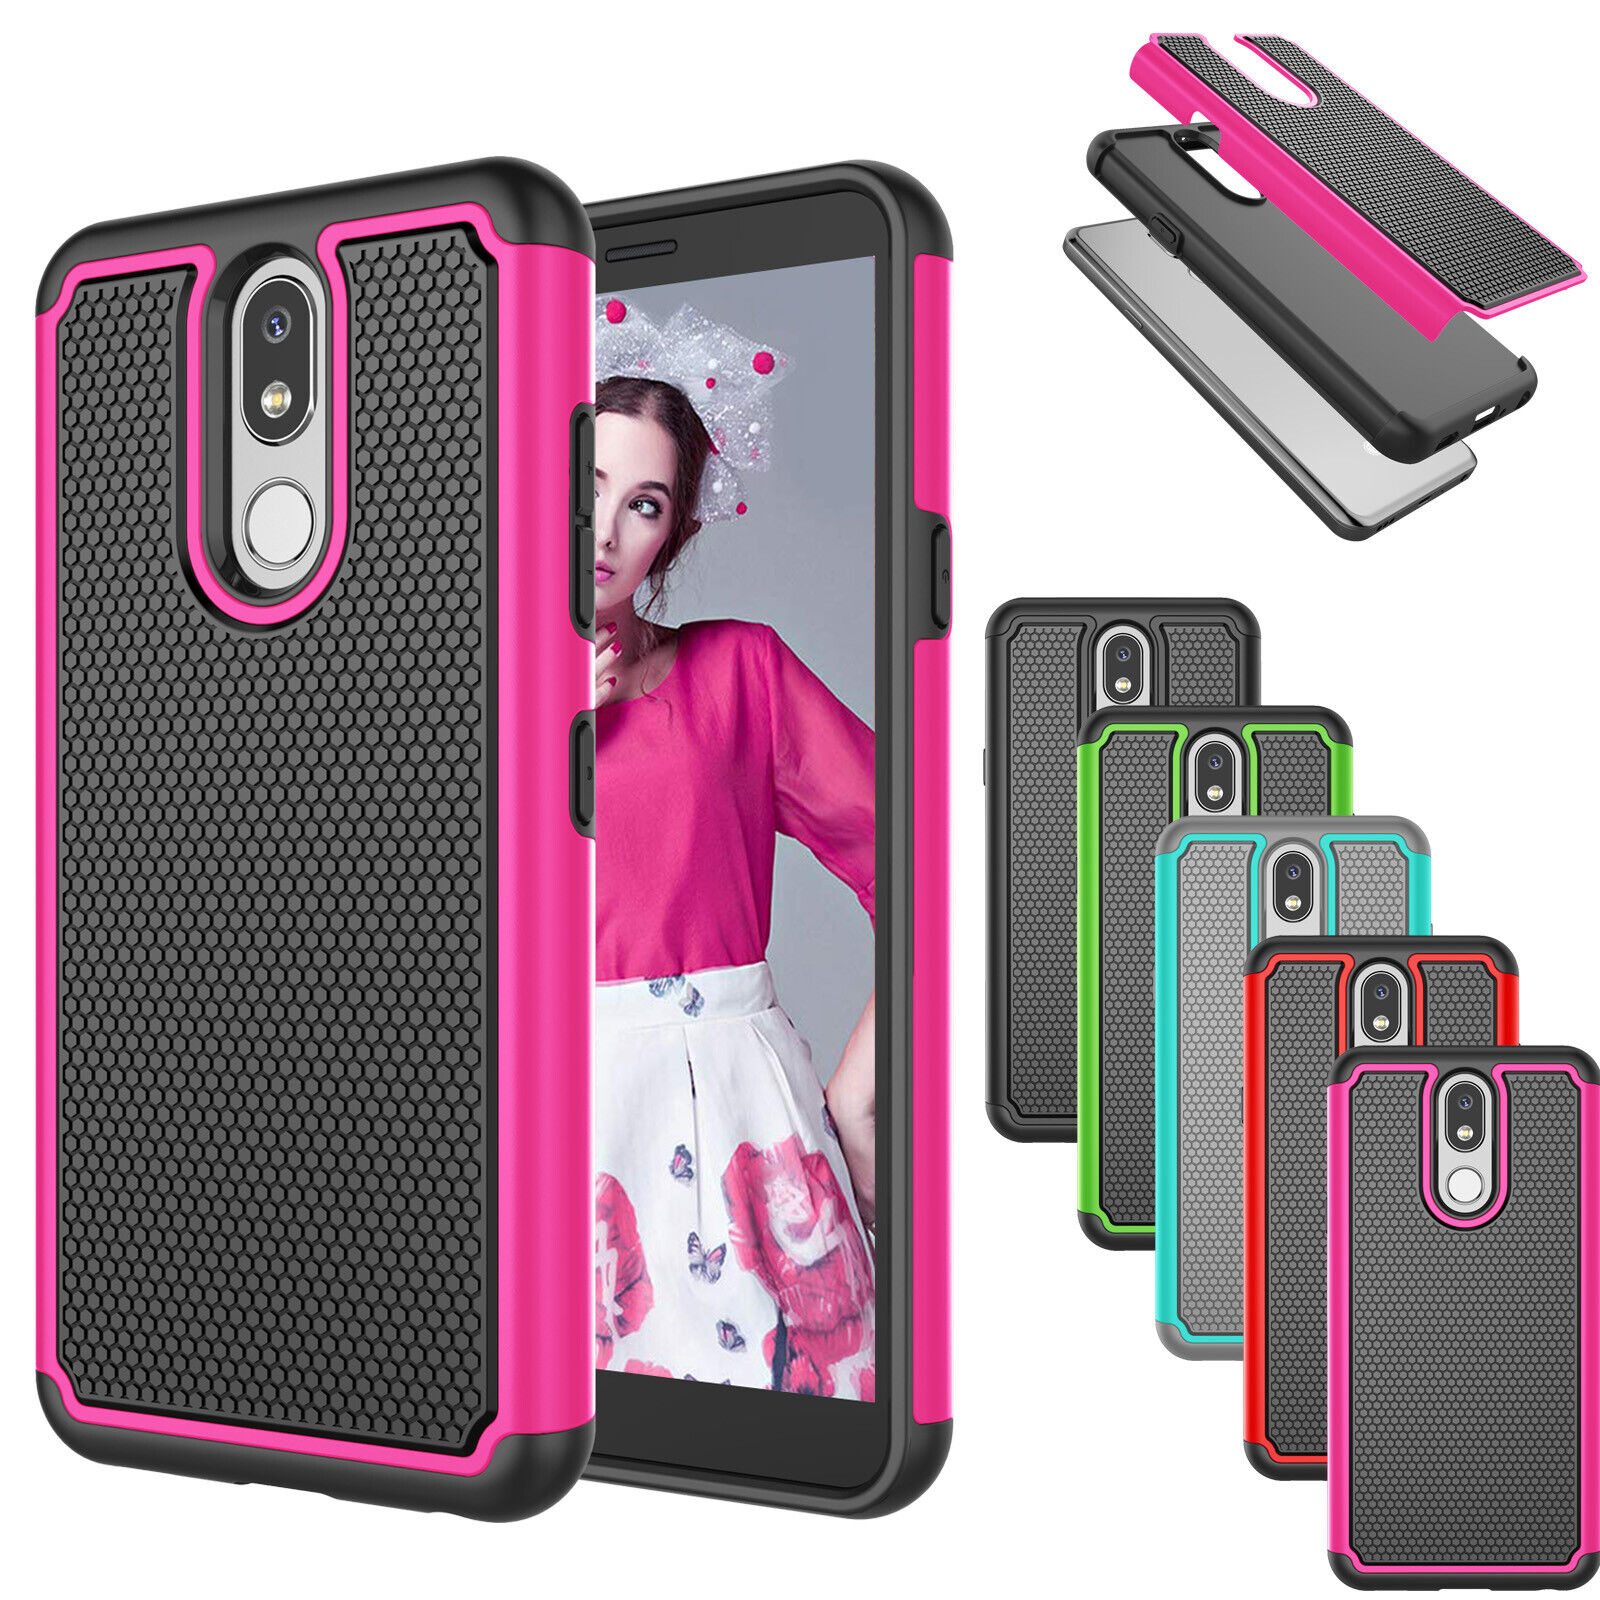 For LG Aristo 4+ Plus/Prime 2/Tribute Royal/Escape Plus Case Slim Hybrid Cover Cases, Covers & Skins